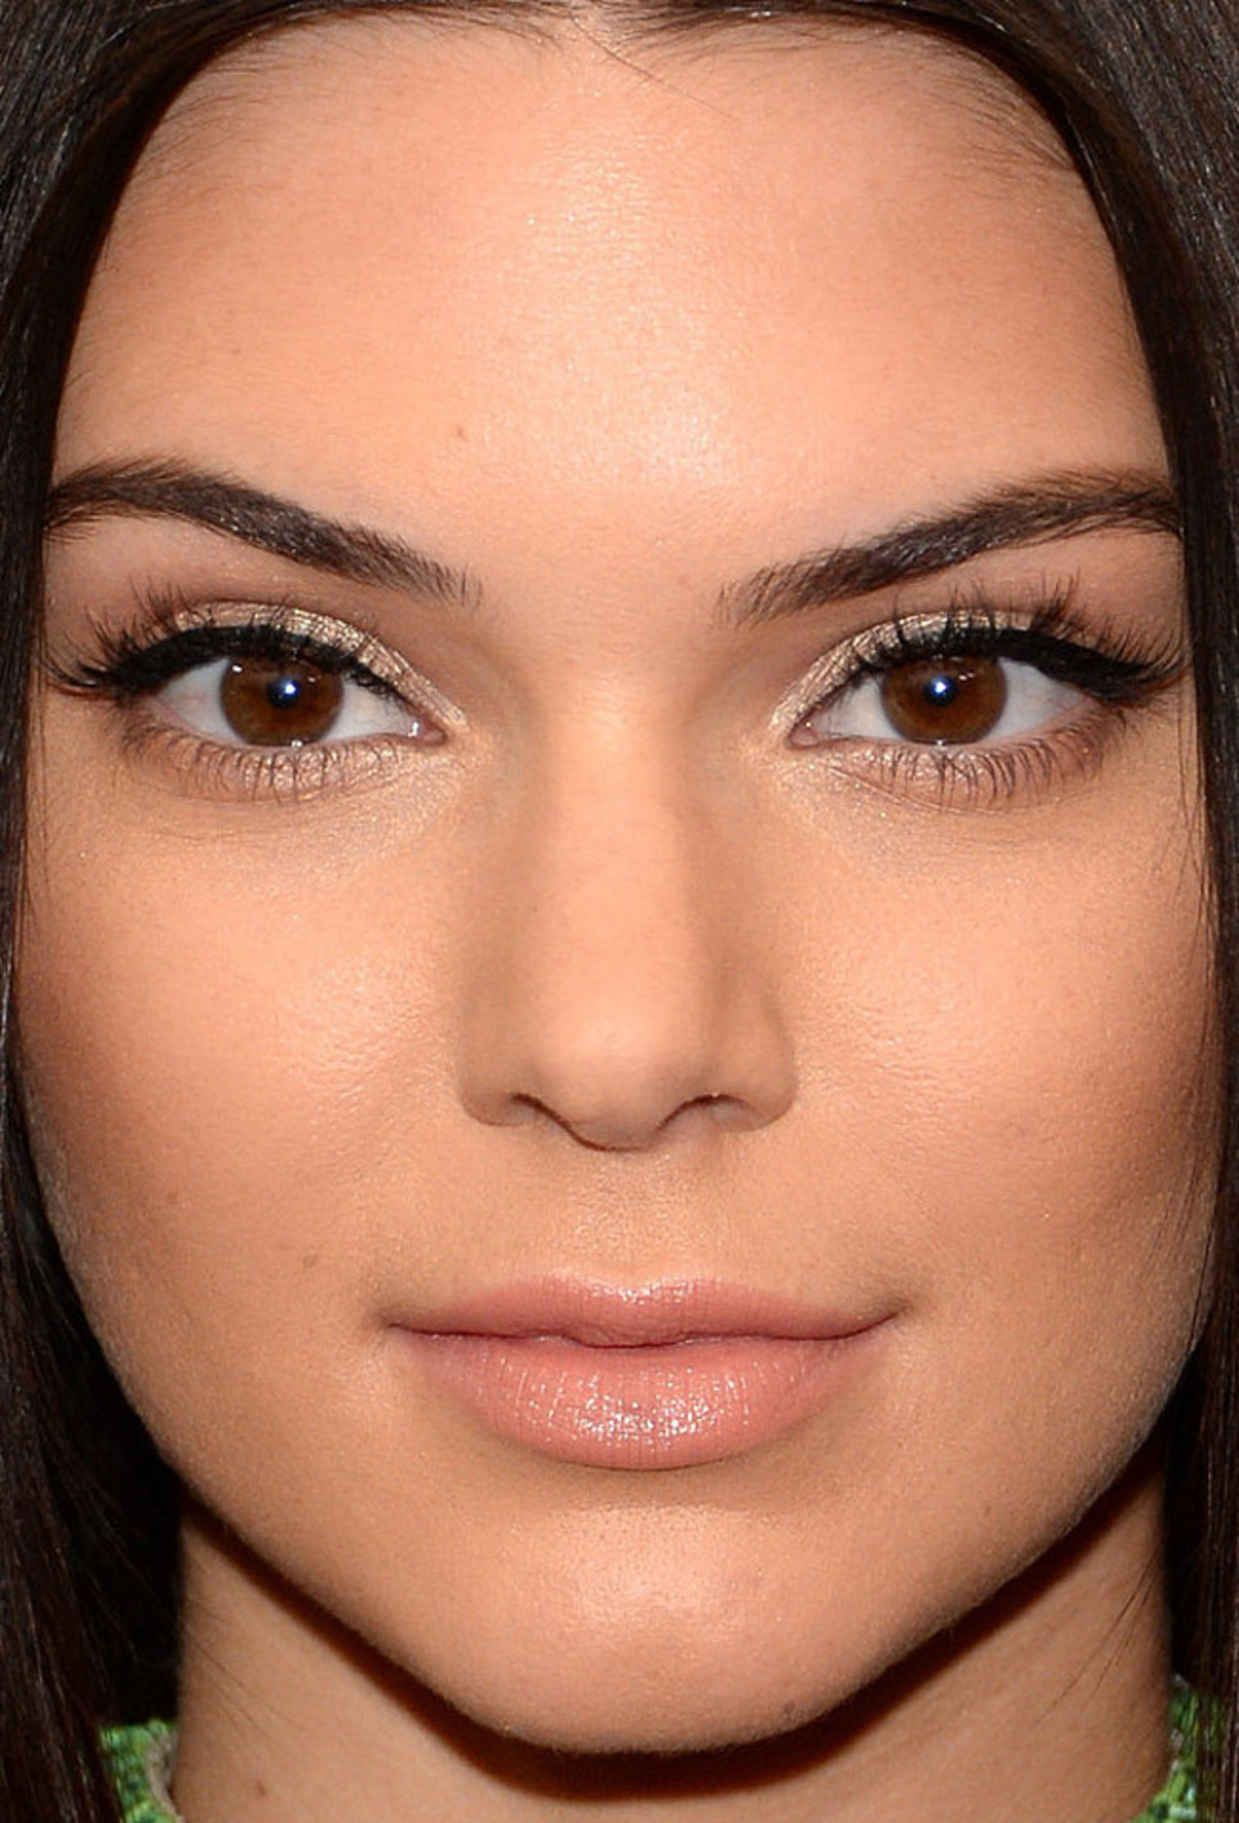 10 Celebrities With Awesome Beauty Lines - Allure